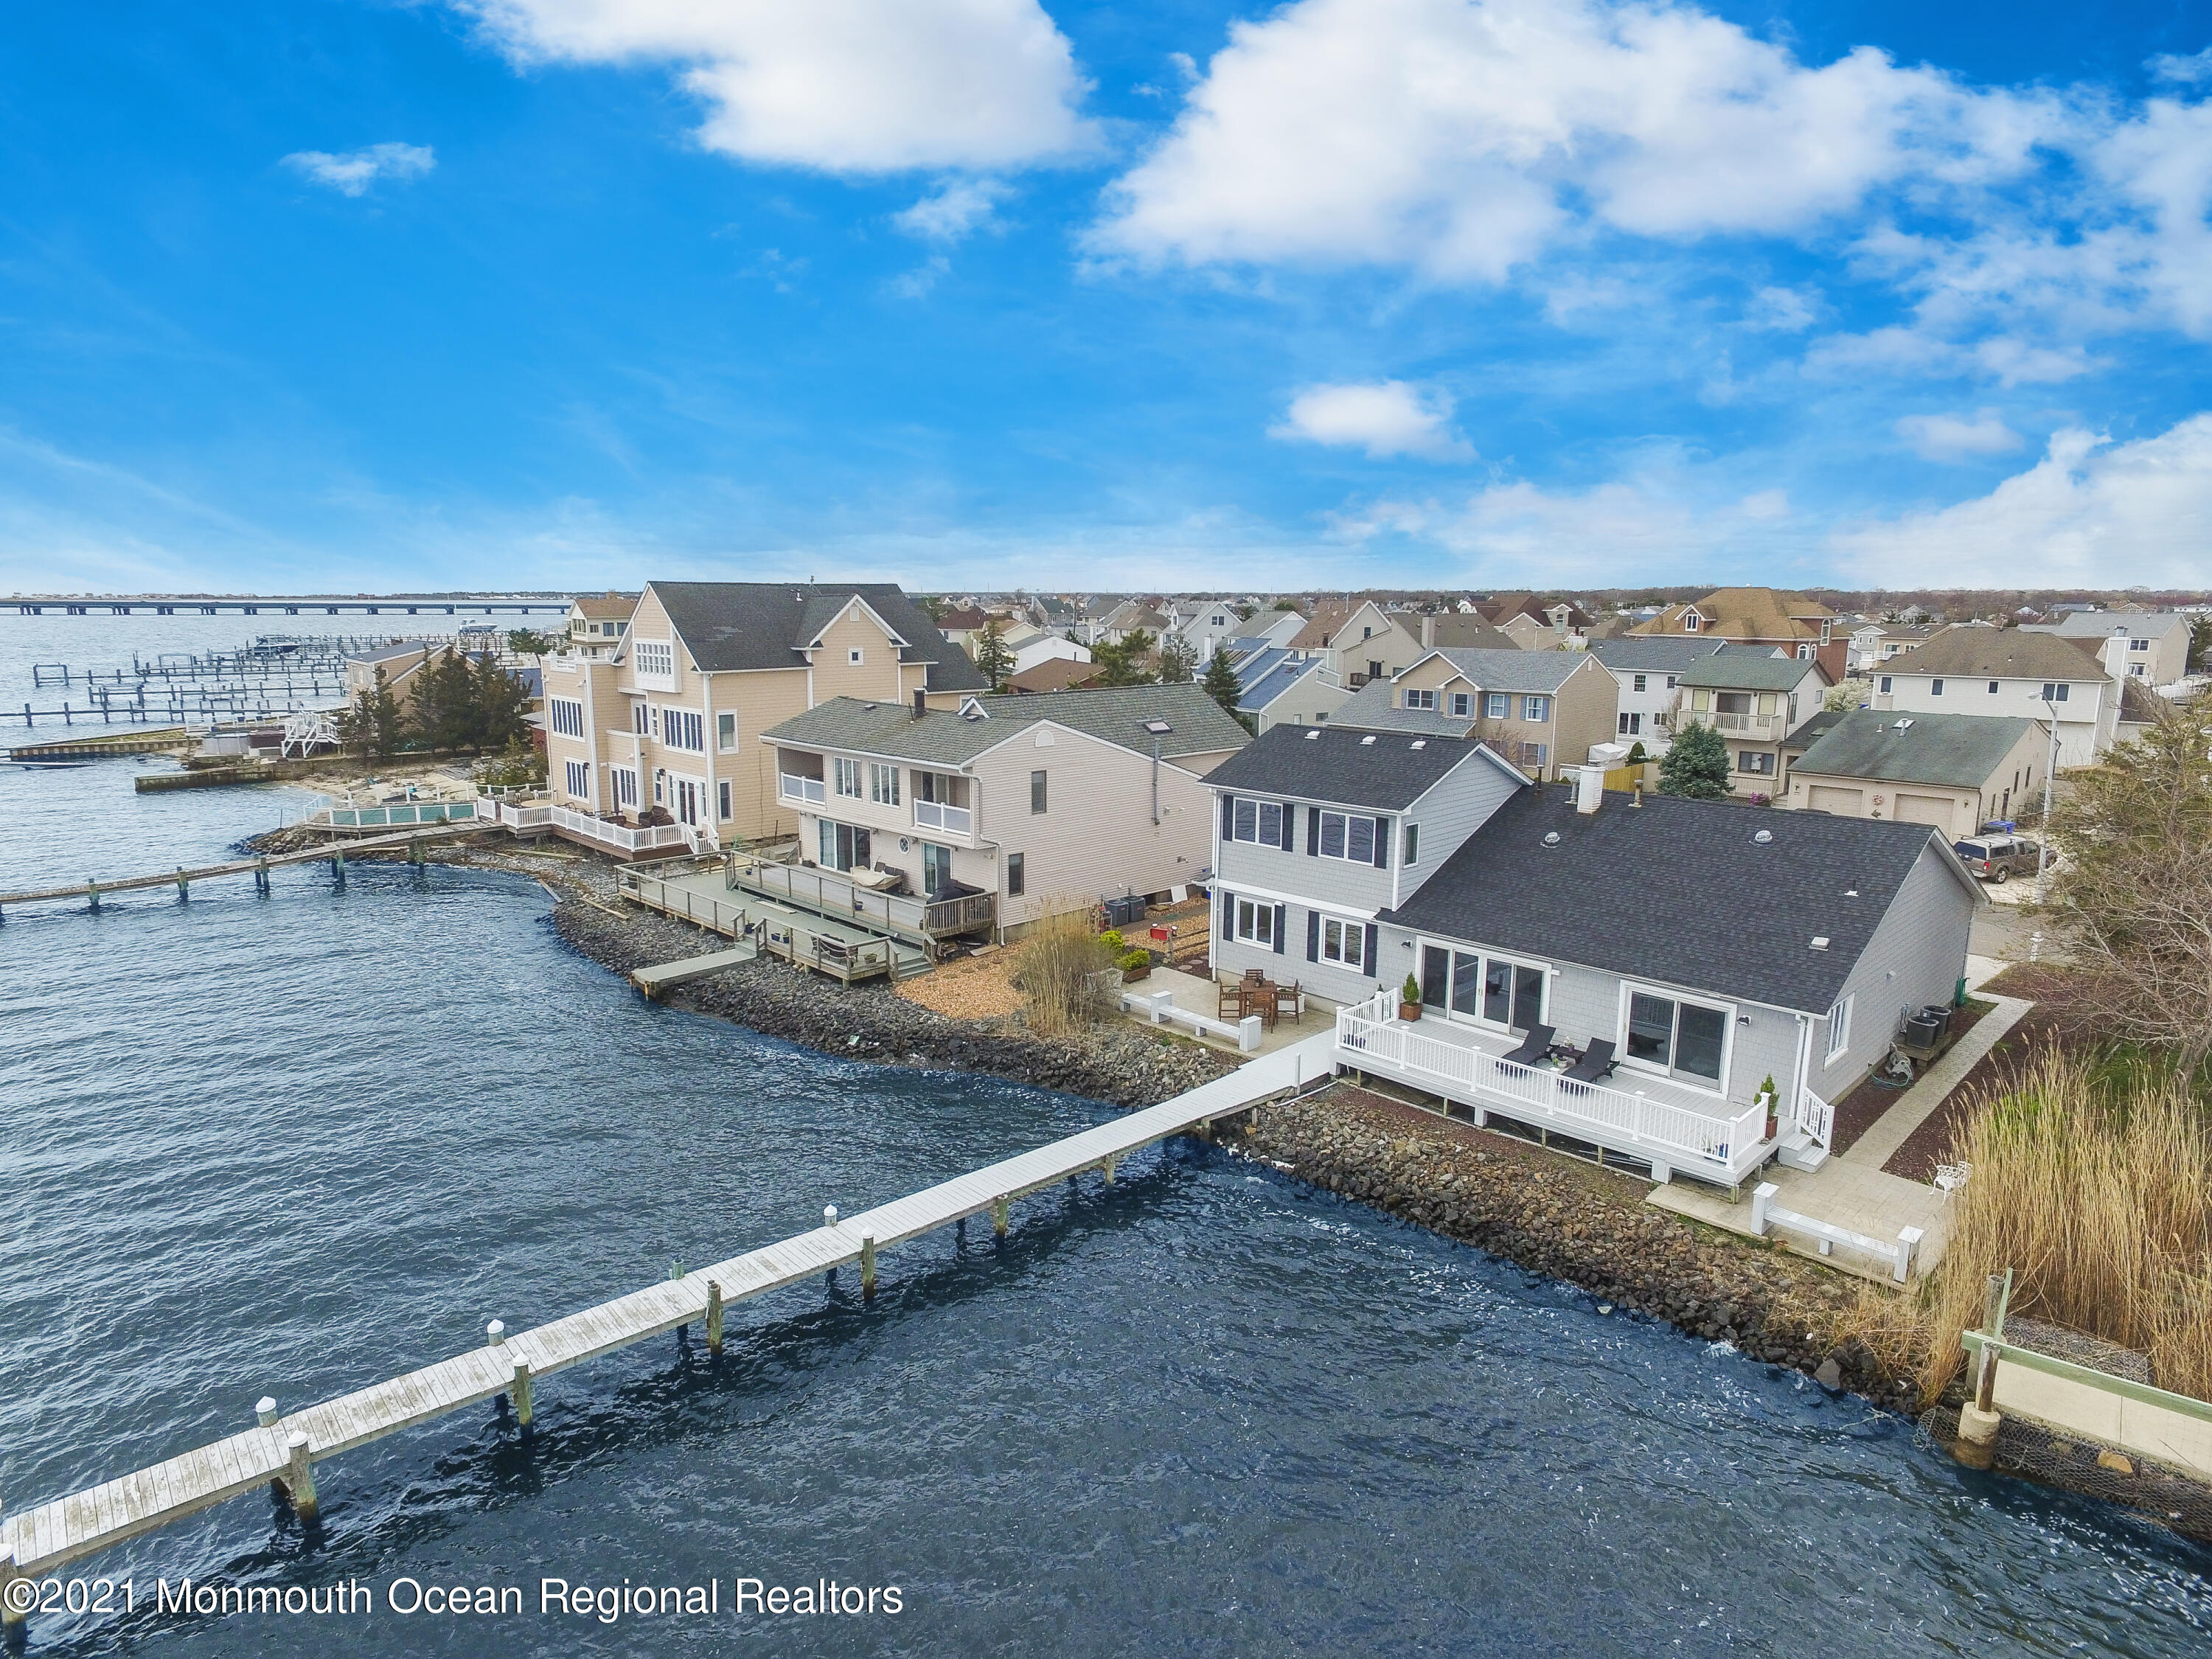 3301 Long Point Drive, Toms River, New Jersey 08753, 4 Bedrooms Bedrooms, ,3 BathroomsBathrooms,Single Family,For Sale,3301 Long Point Drive,2,22111515